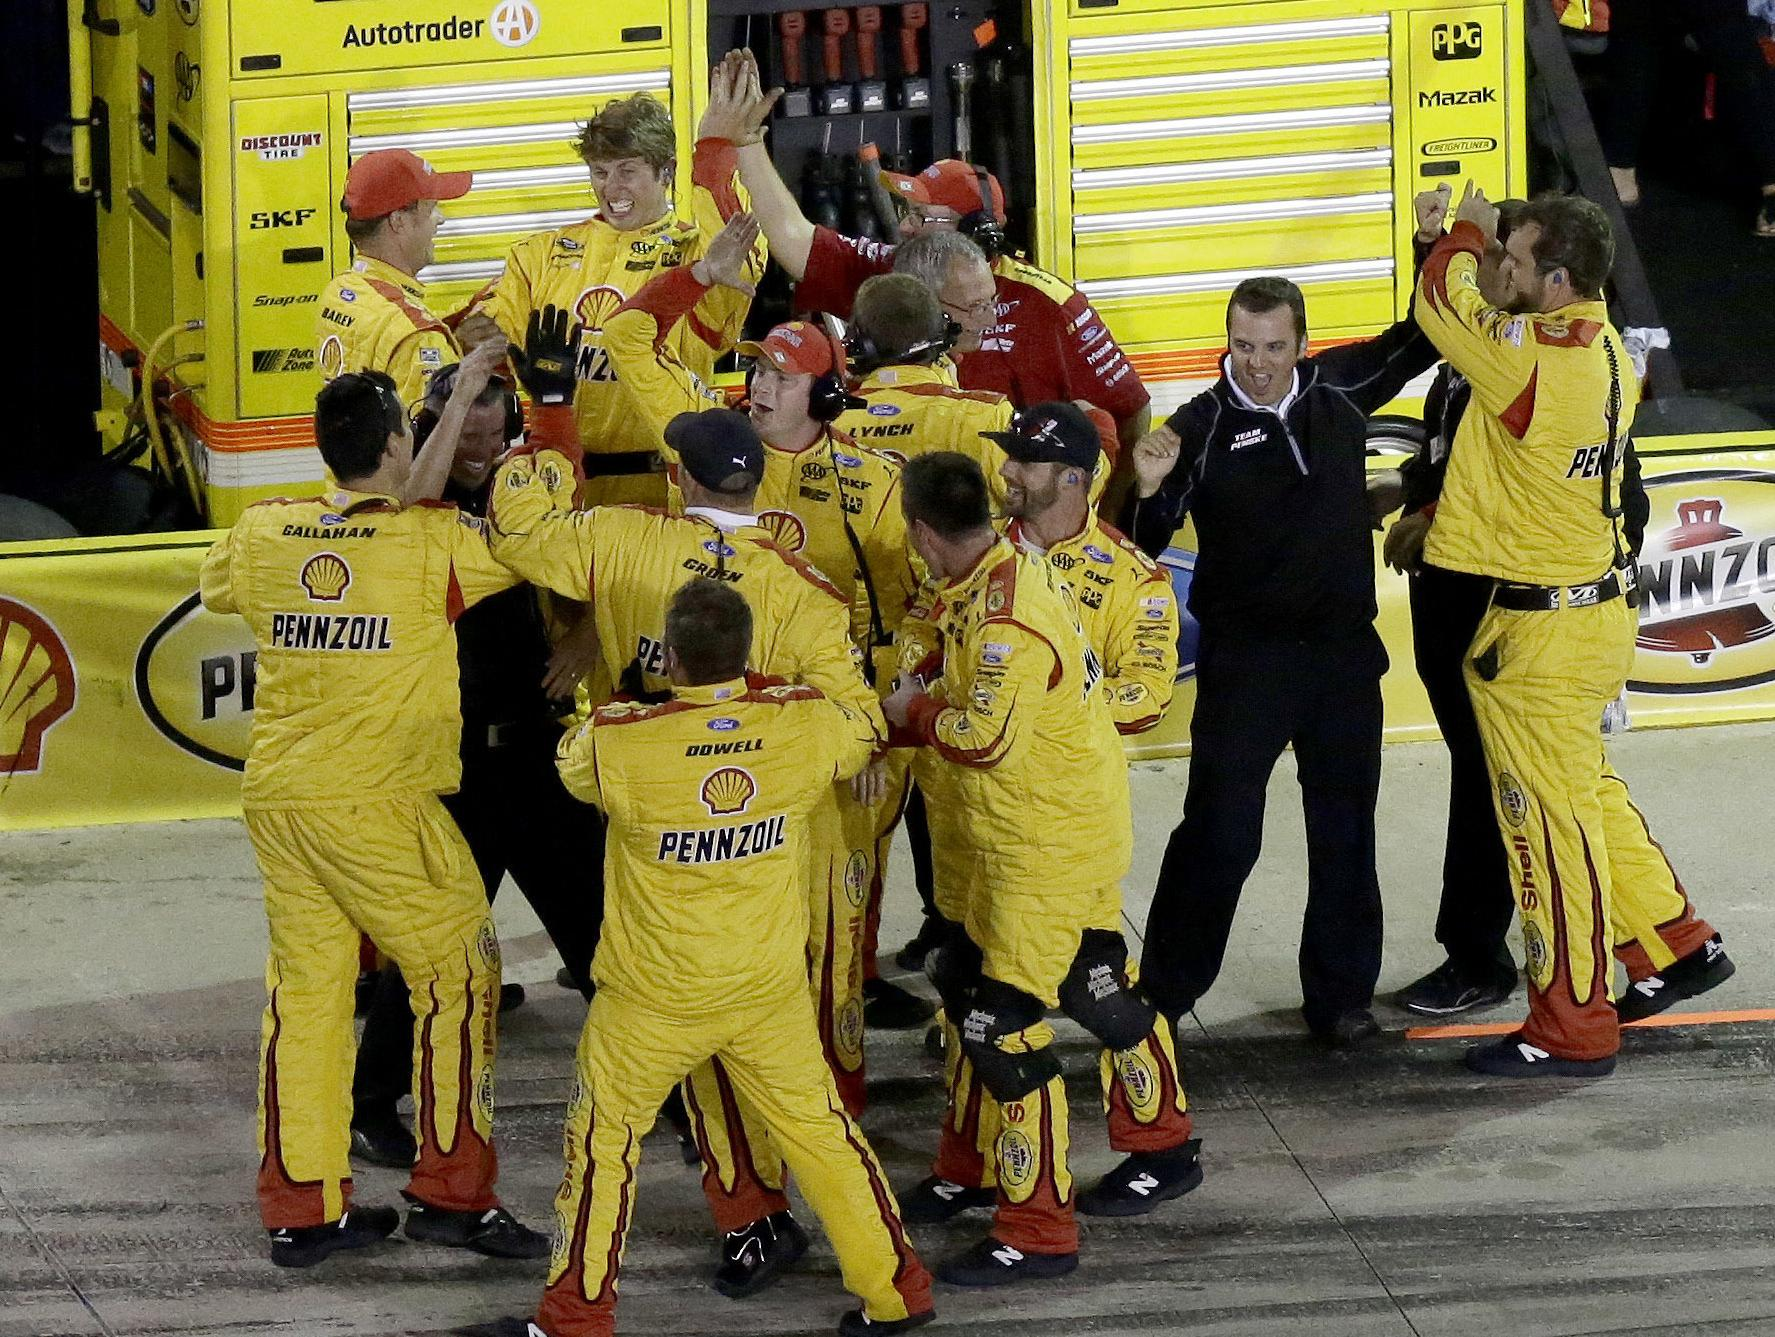 Logano wins All Star race after taking lead with 2 laps to